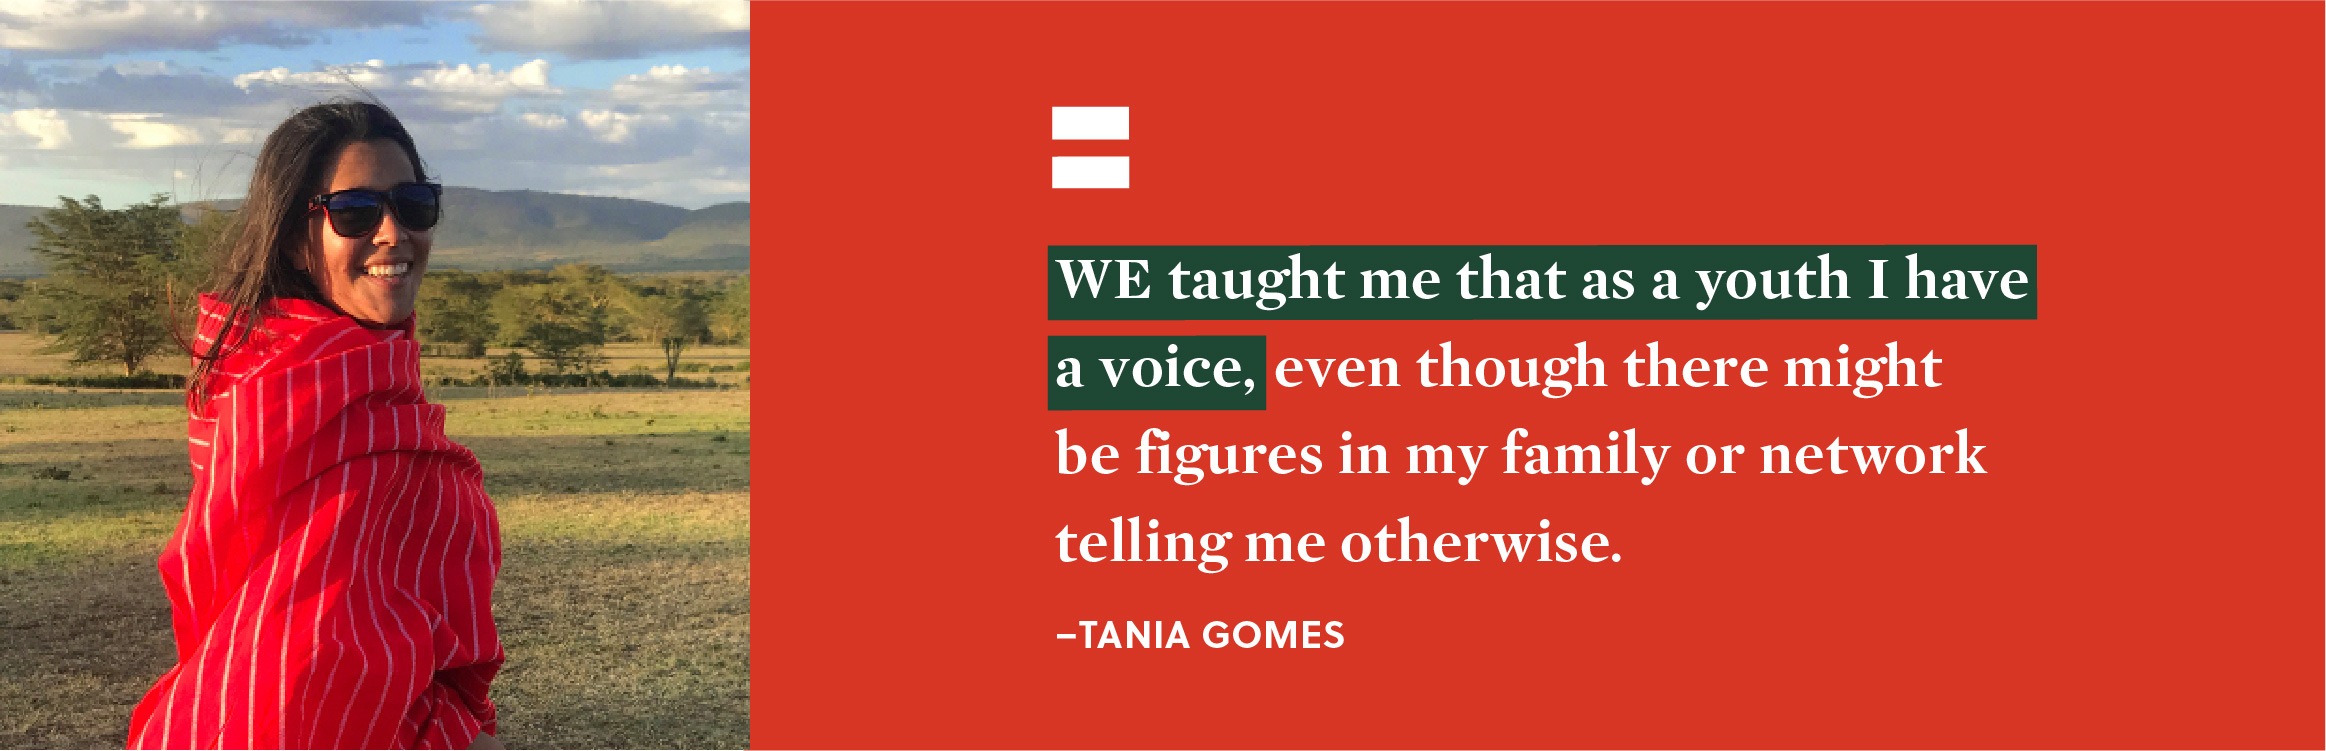 """WE taught me that as a young I have a voice, even though there might be figures in my family or network telling me otherwise."" - Tania Gomes."